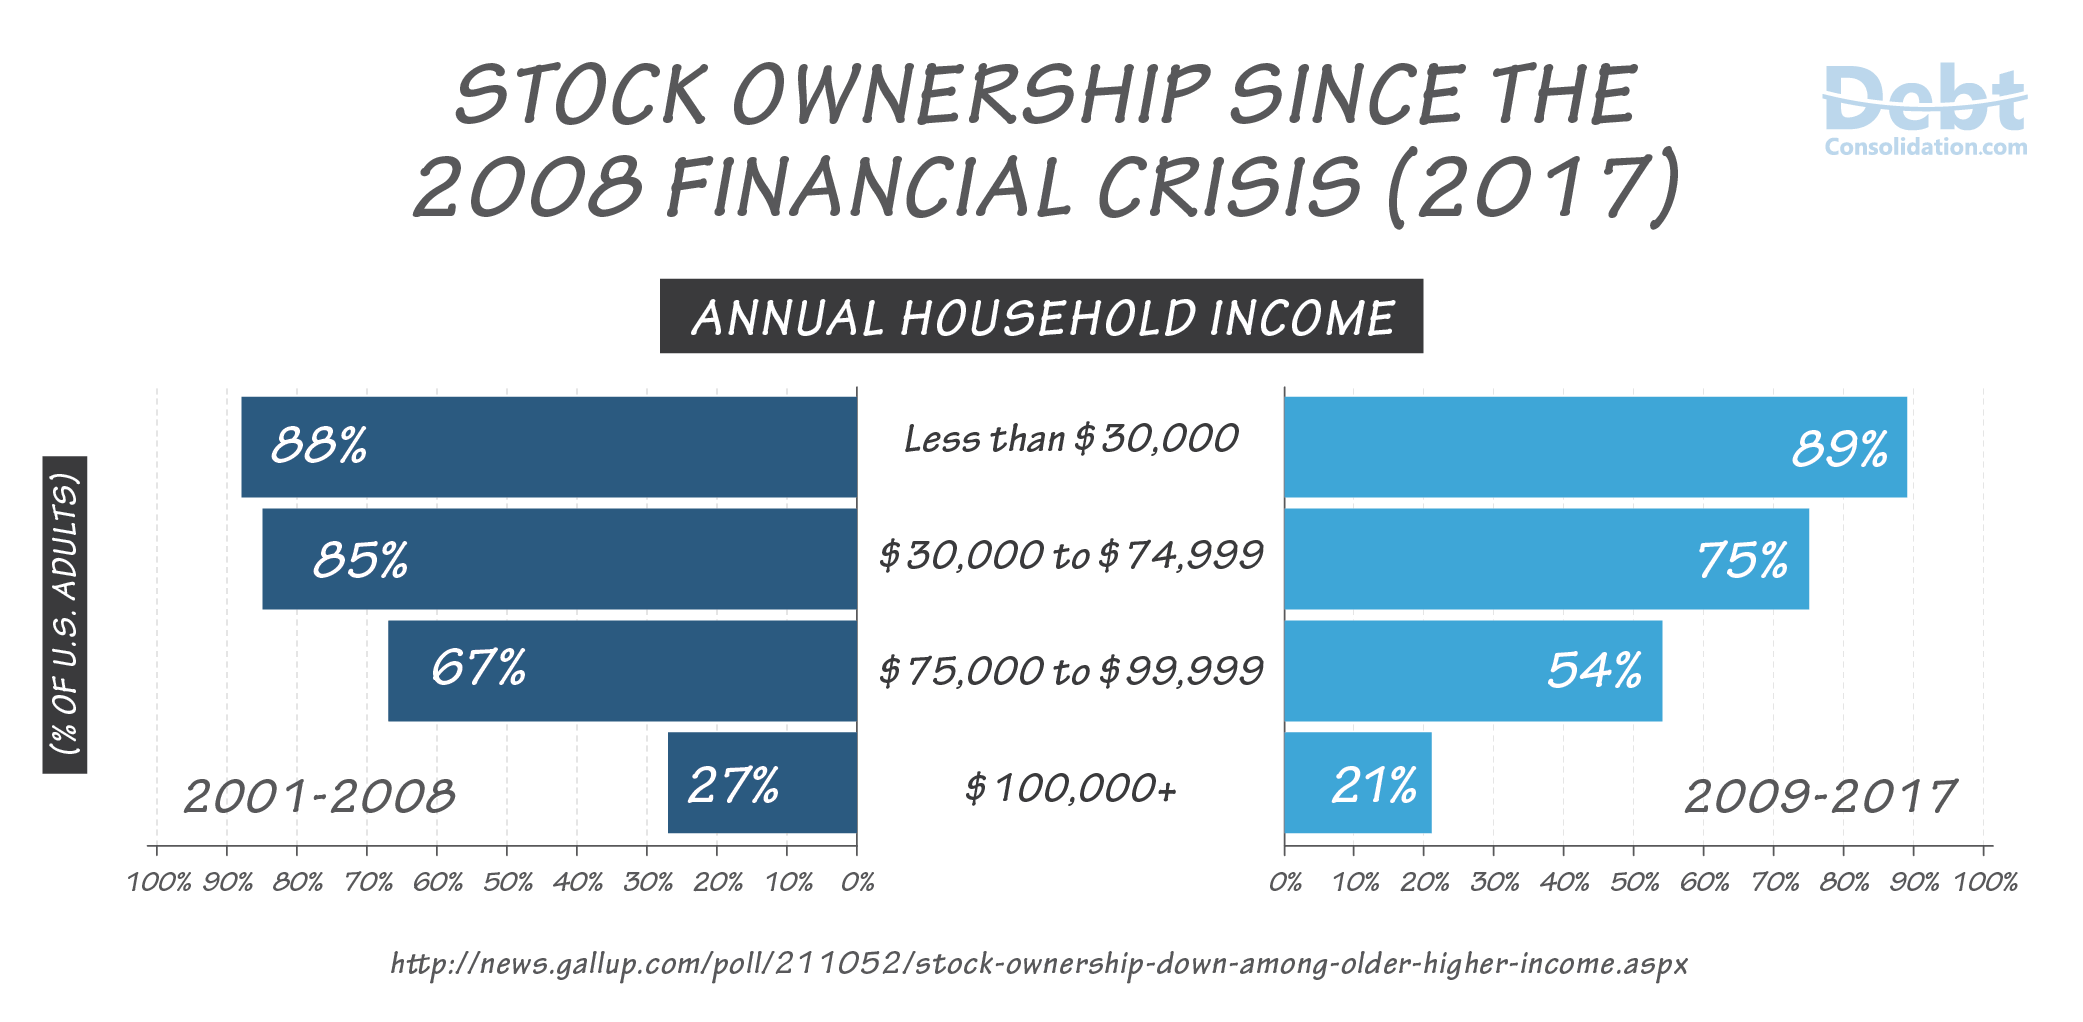 Stock Ownership Since 2008 Financial Crisis